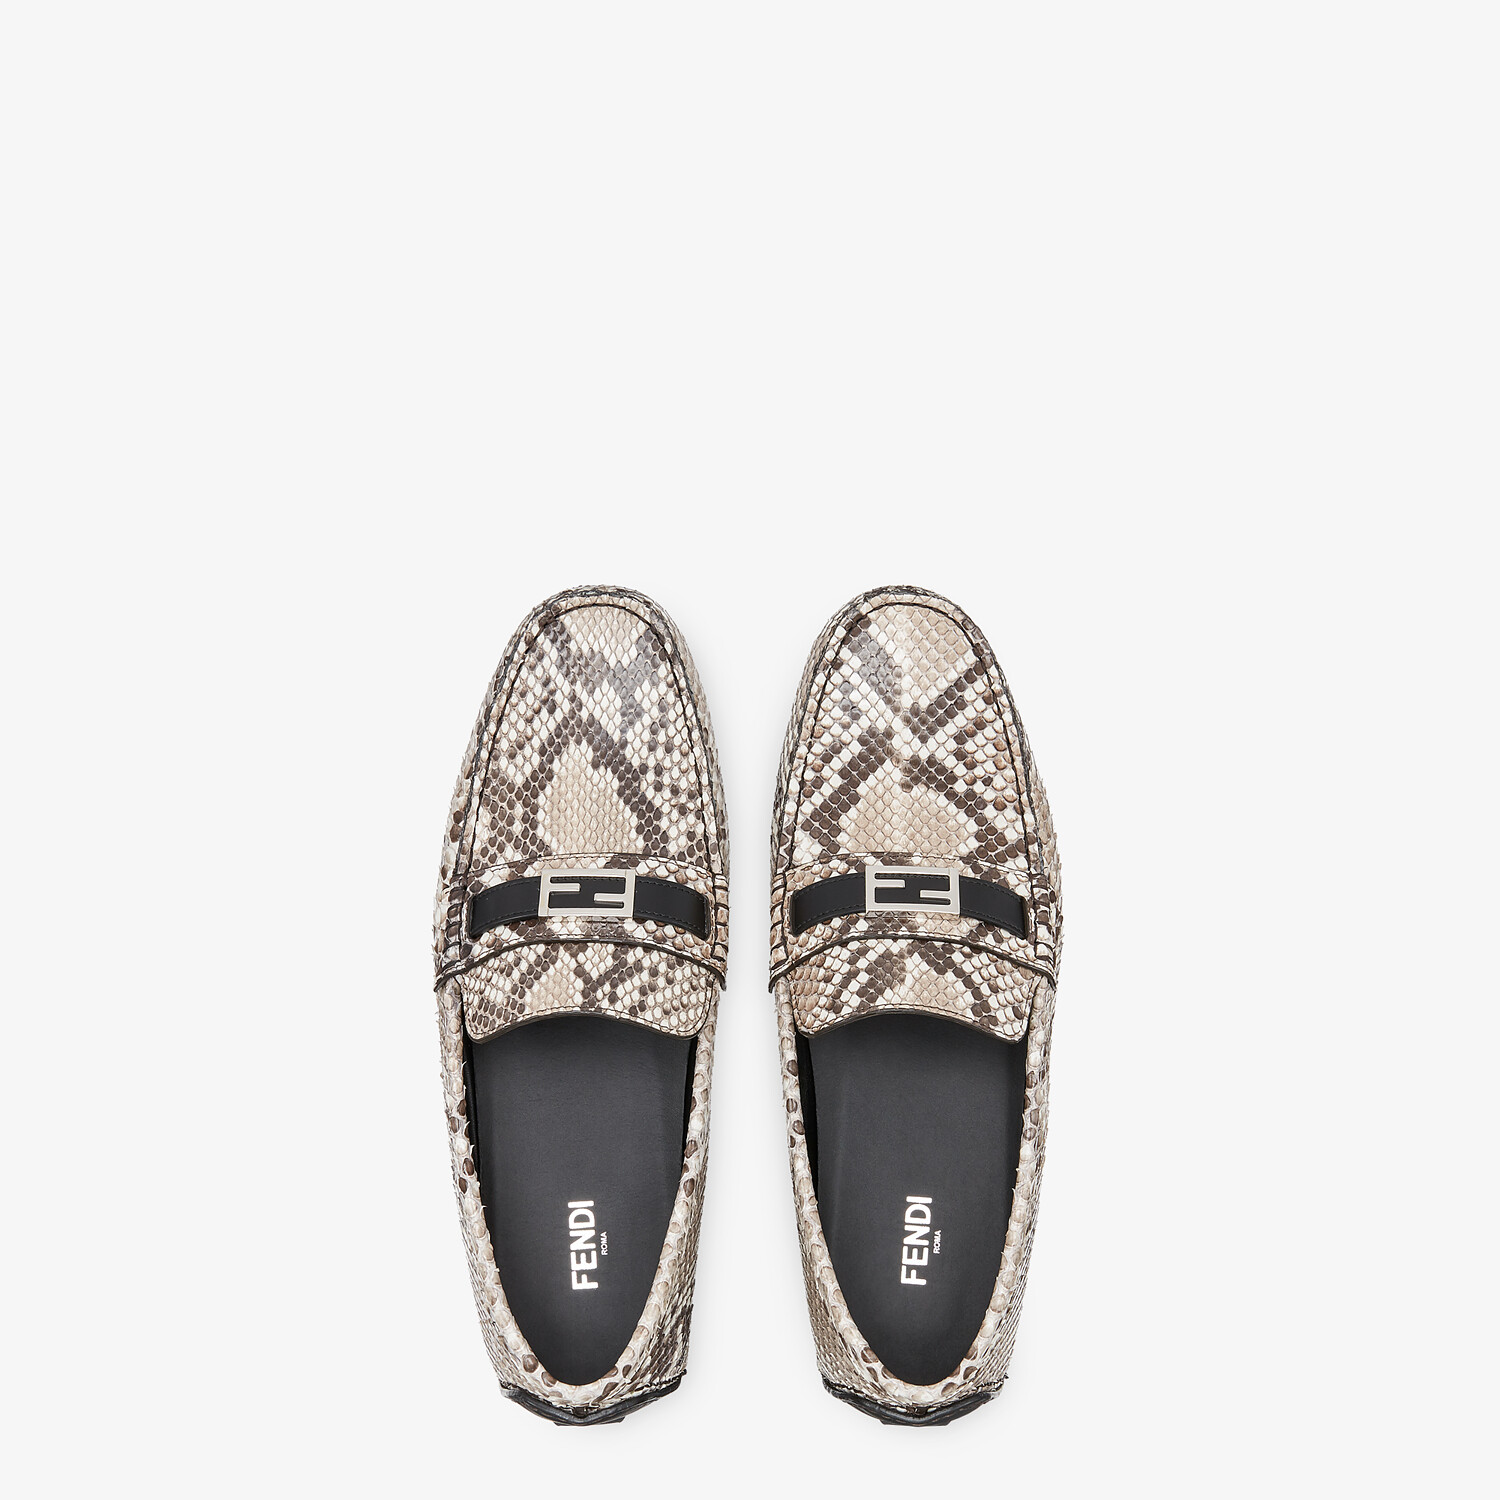 FENDI LOAFERS - Beige python leather drivers - view 4 detail